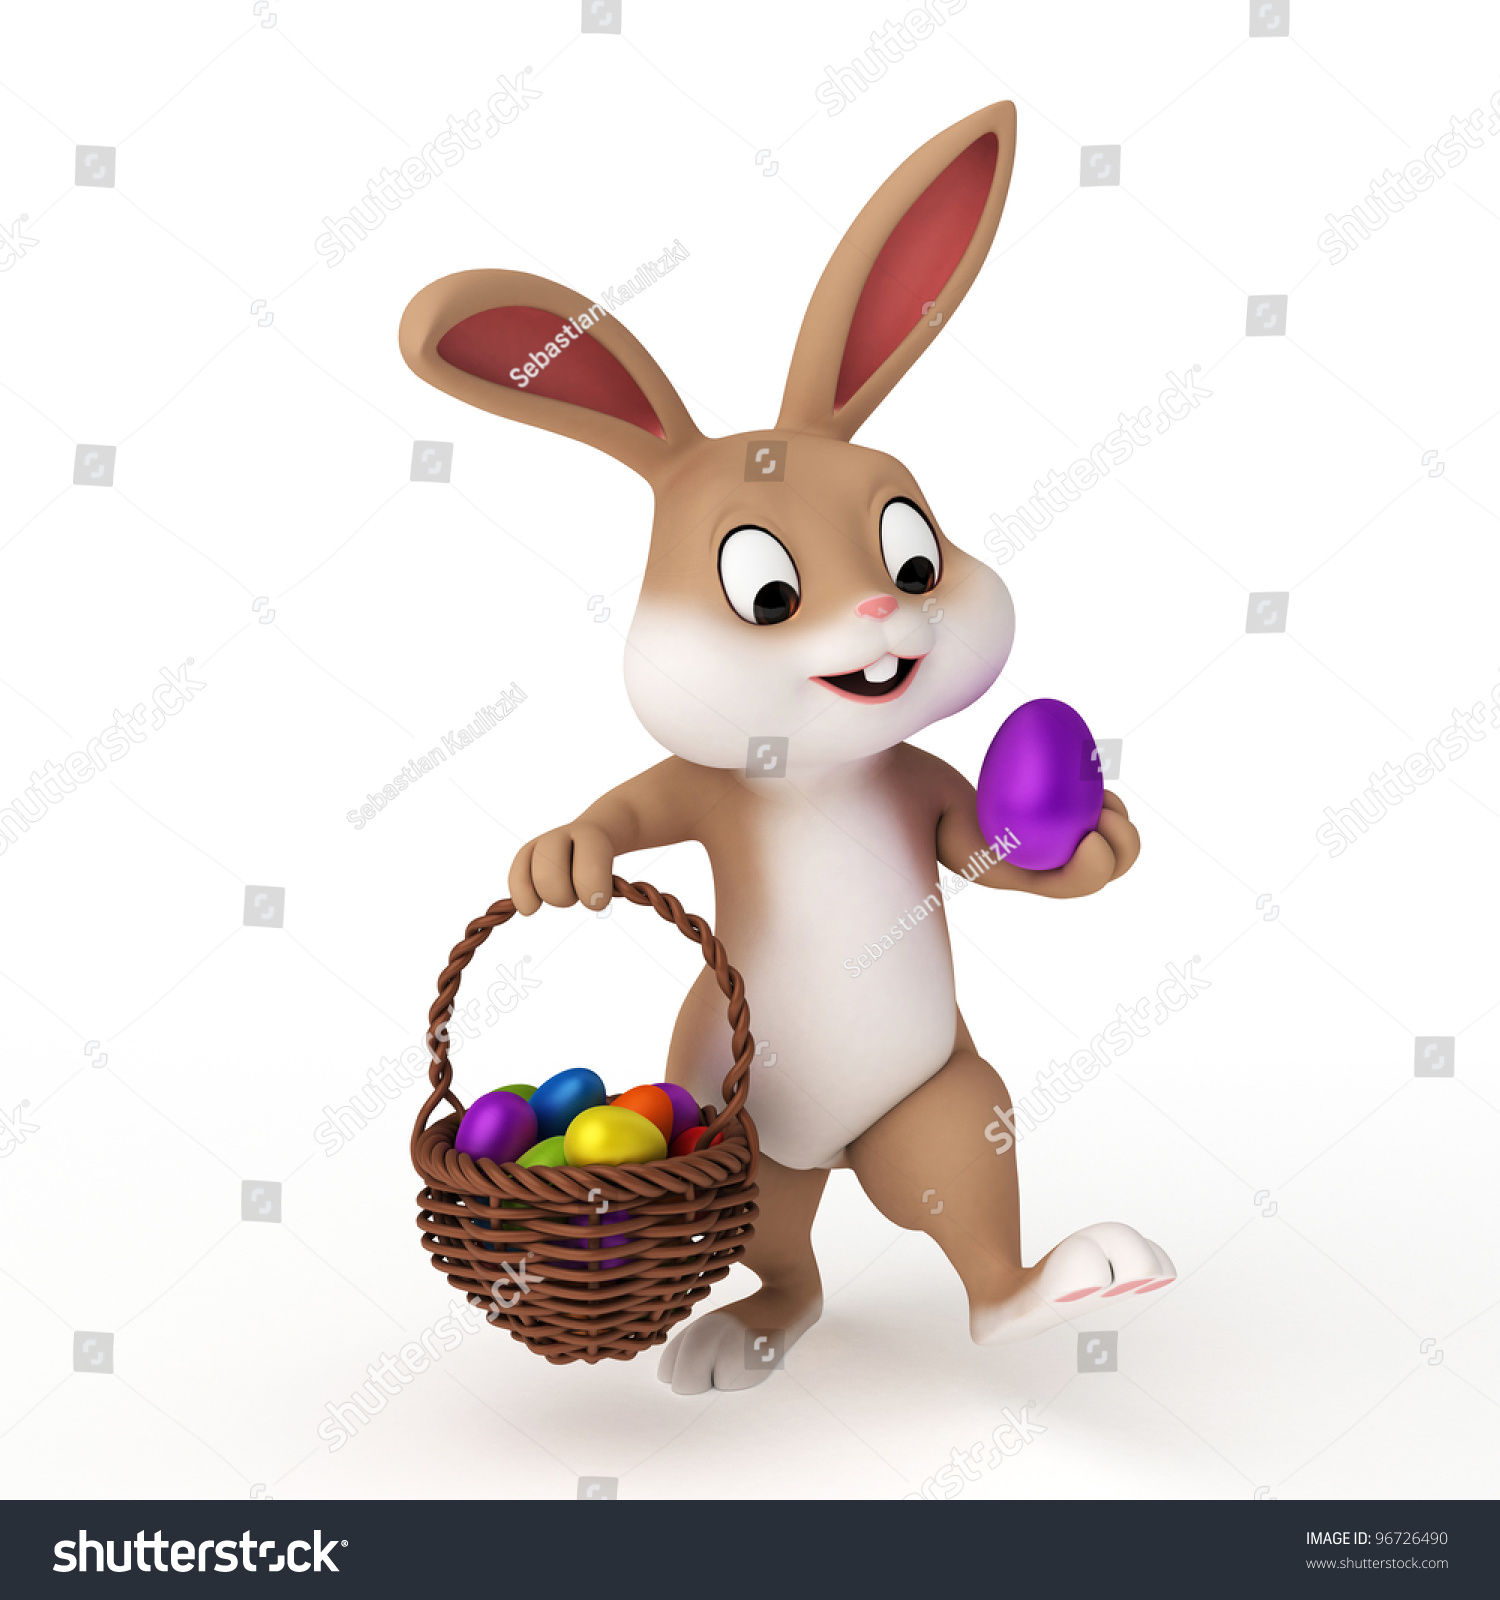 3d Rendered Illustration Of A Cute Easter Bunny - 96726490 ...